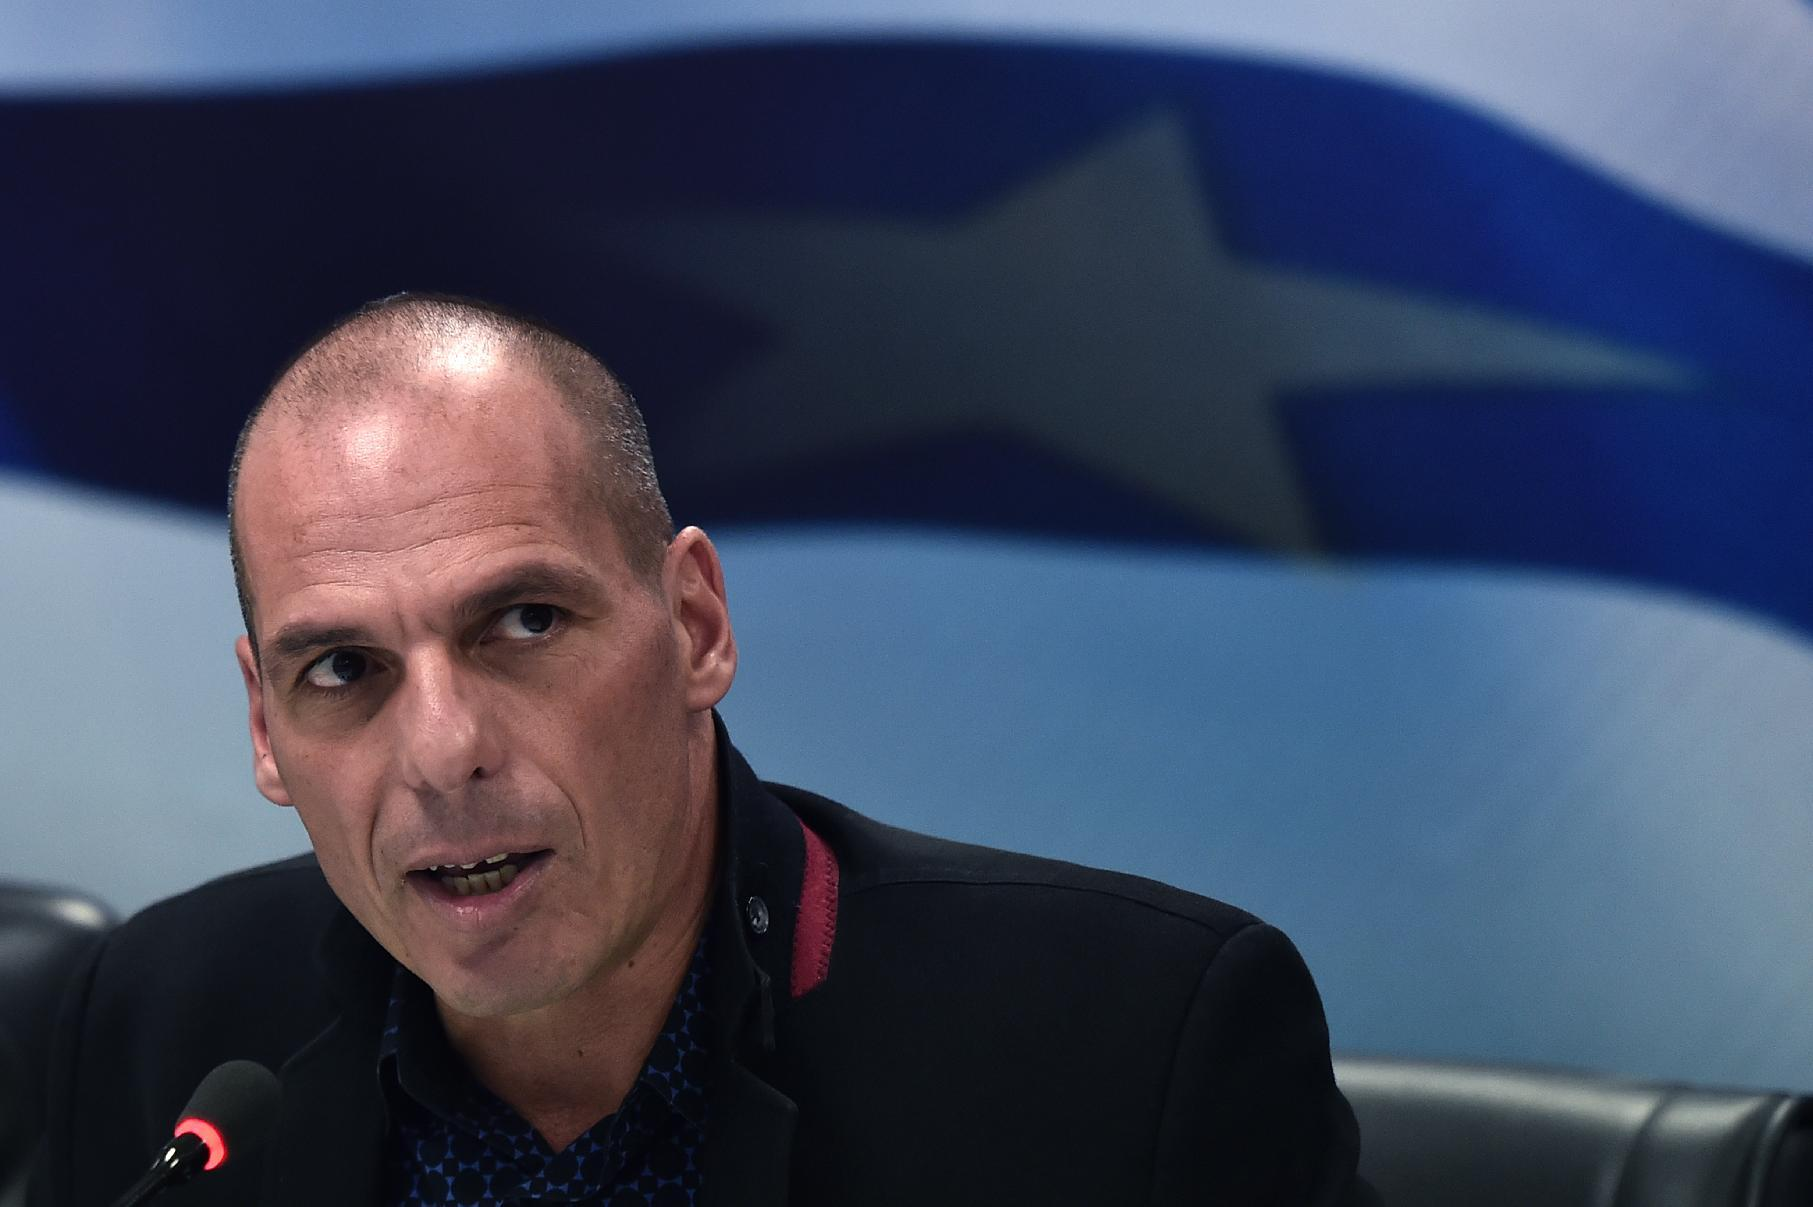 Greece wants 'pan-European' deal on growth, new government says